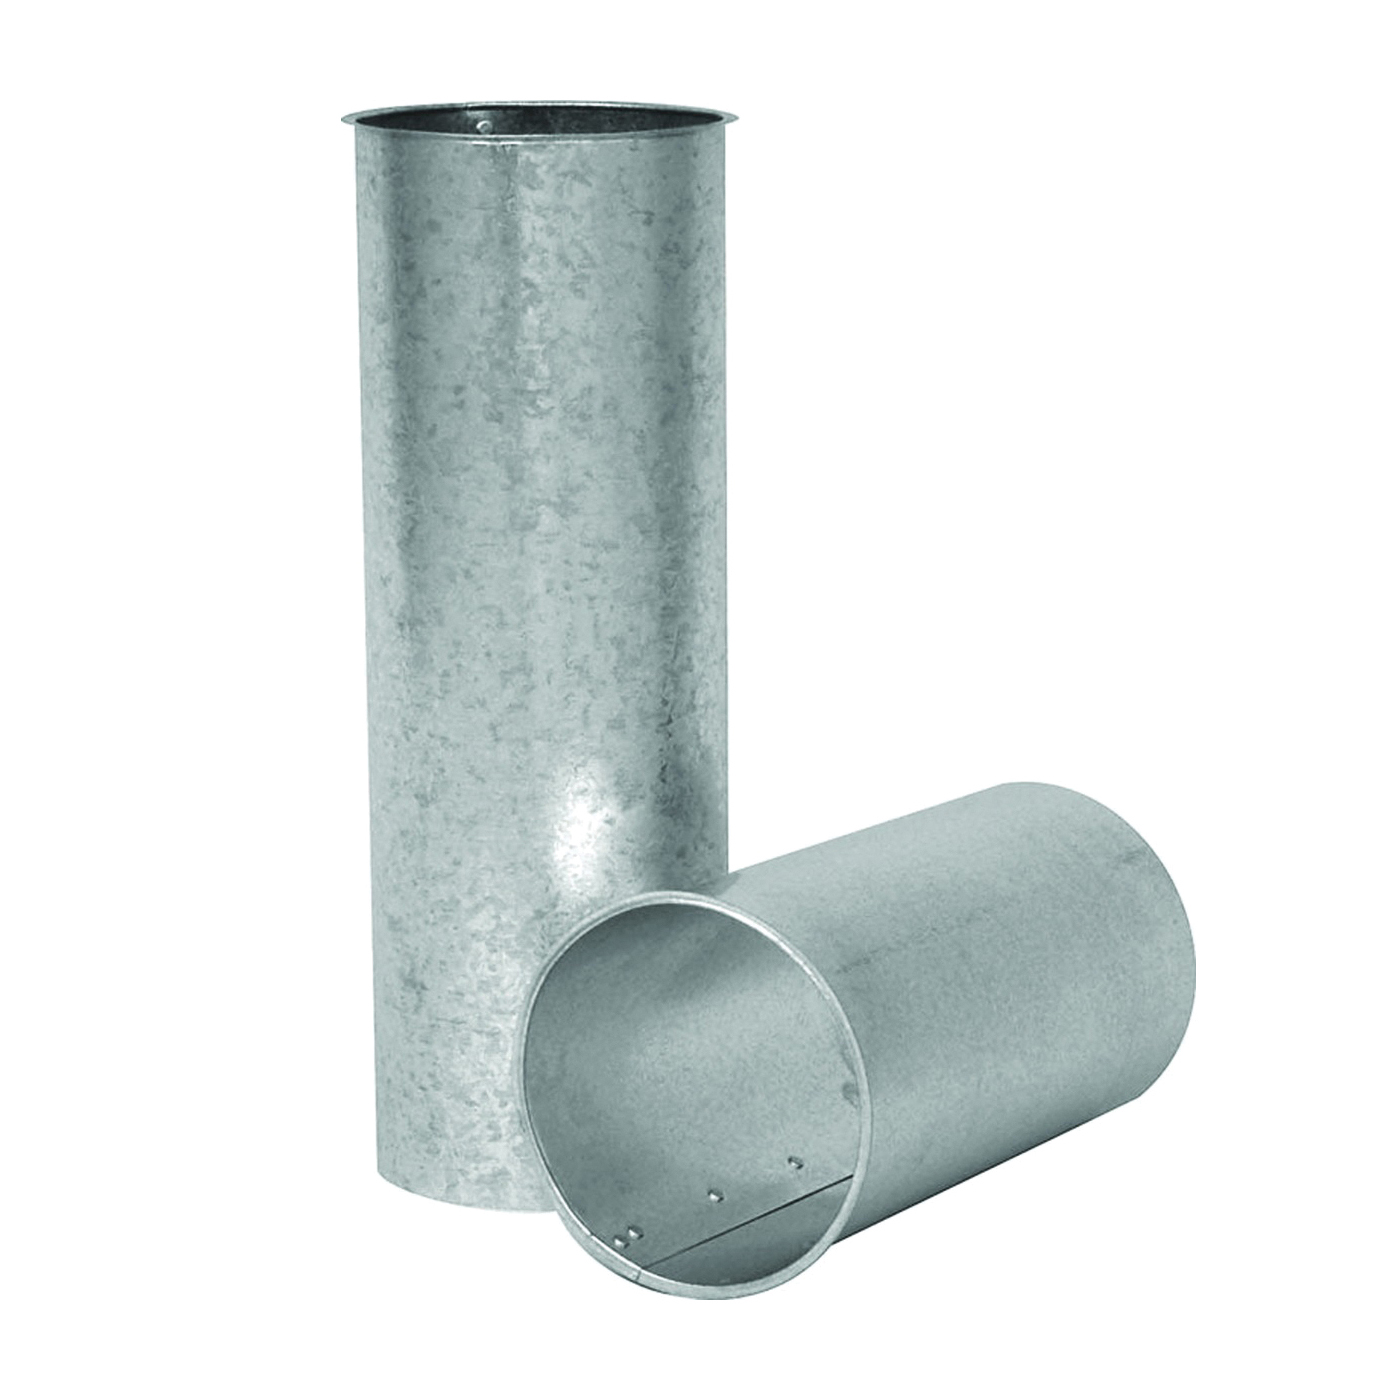 Picture of Imperial GV0931 Chimney Thimble, 28 Gauge, Galvanized Steel, Galvanized